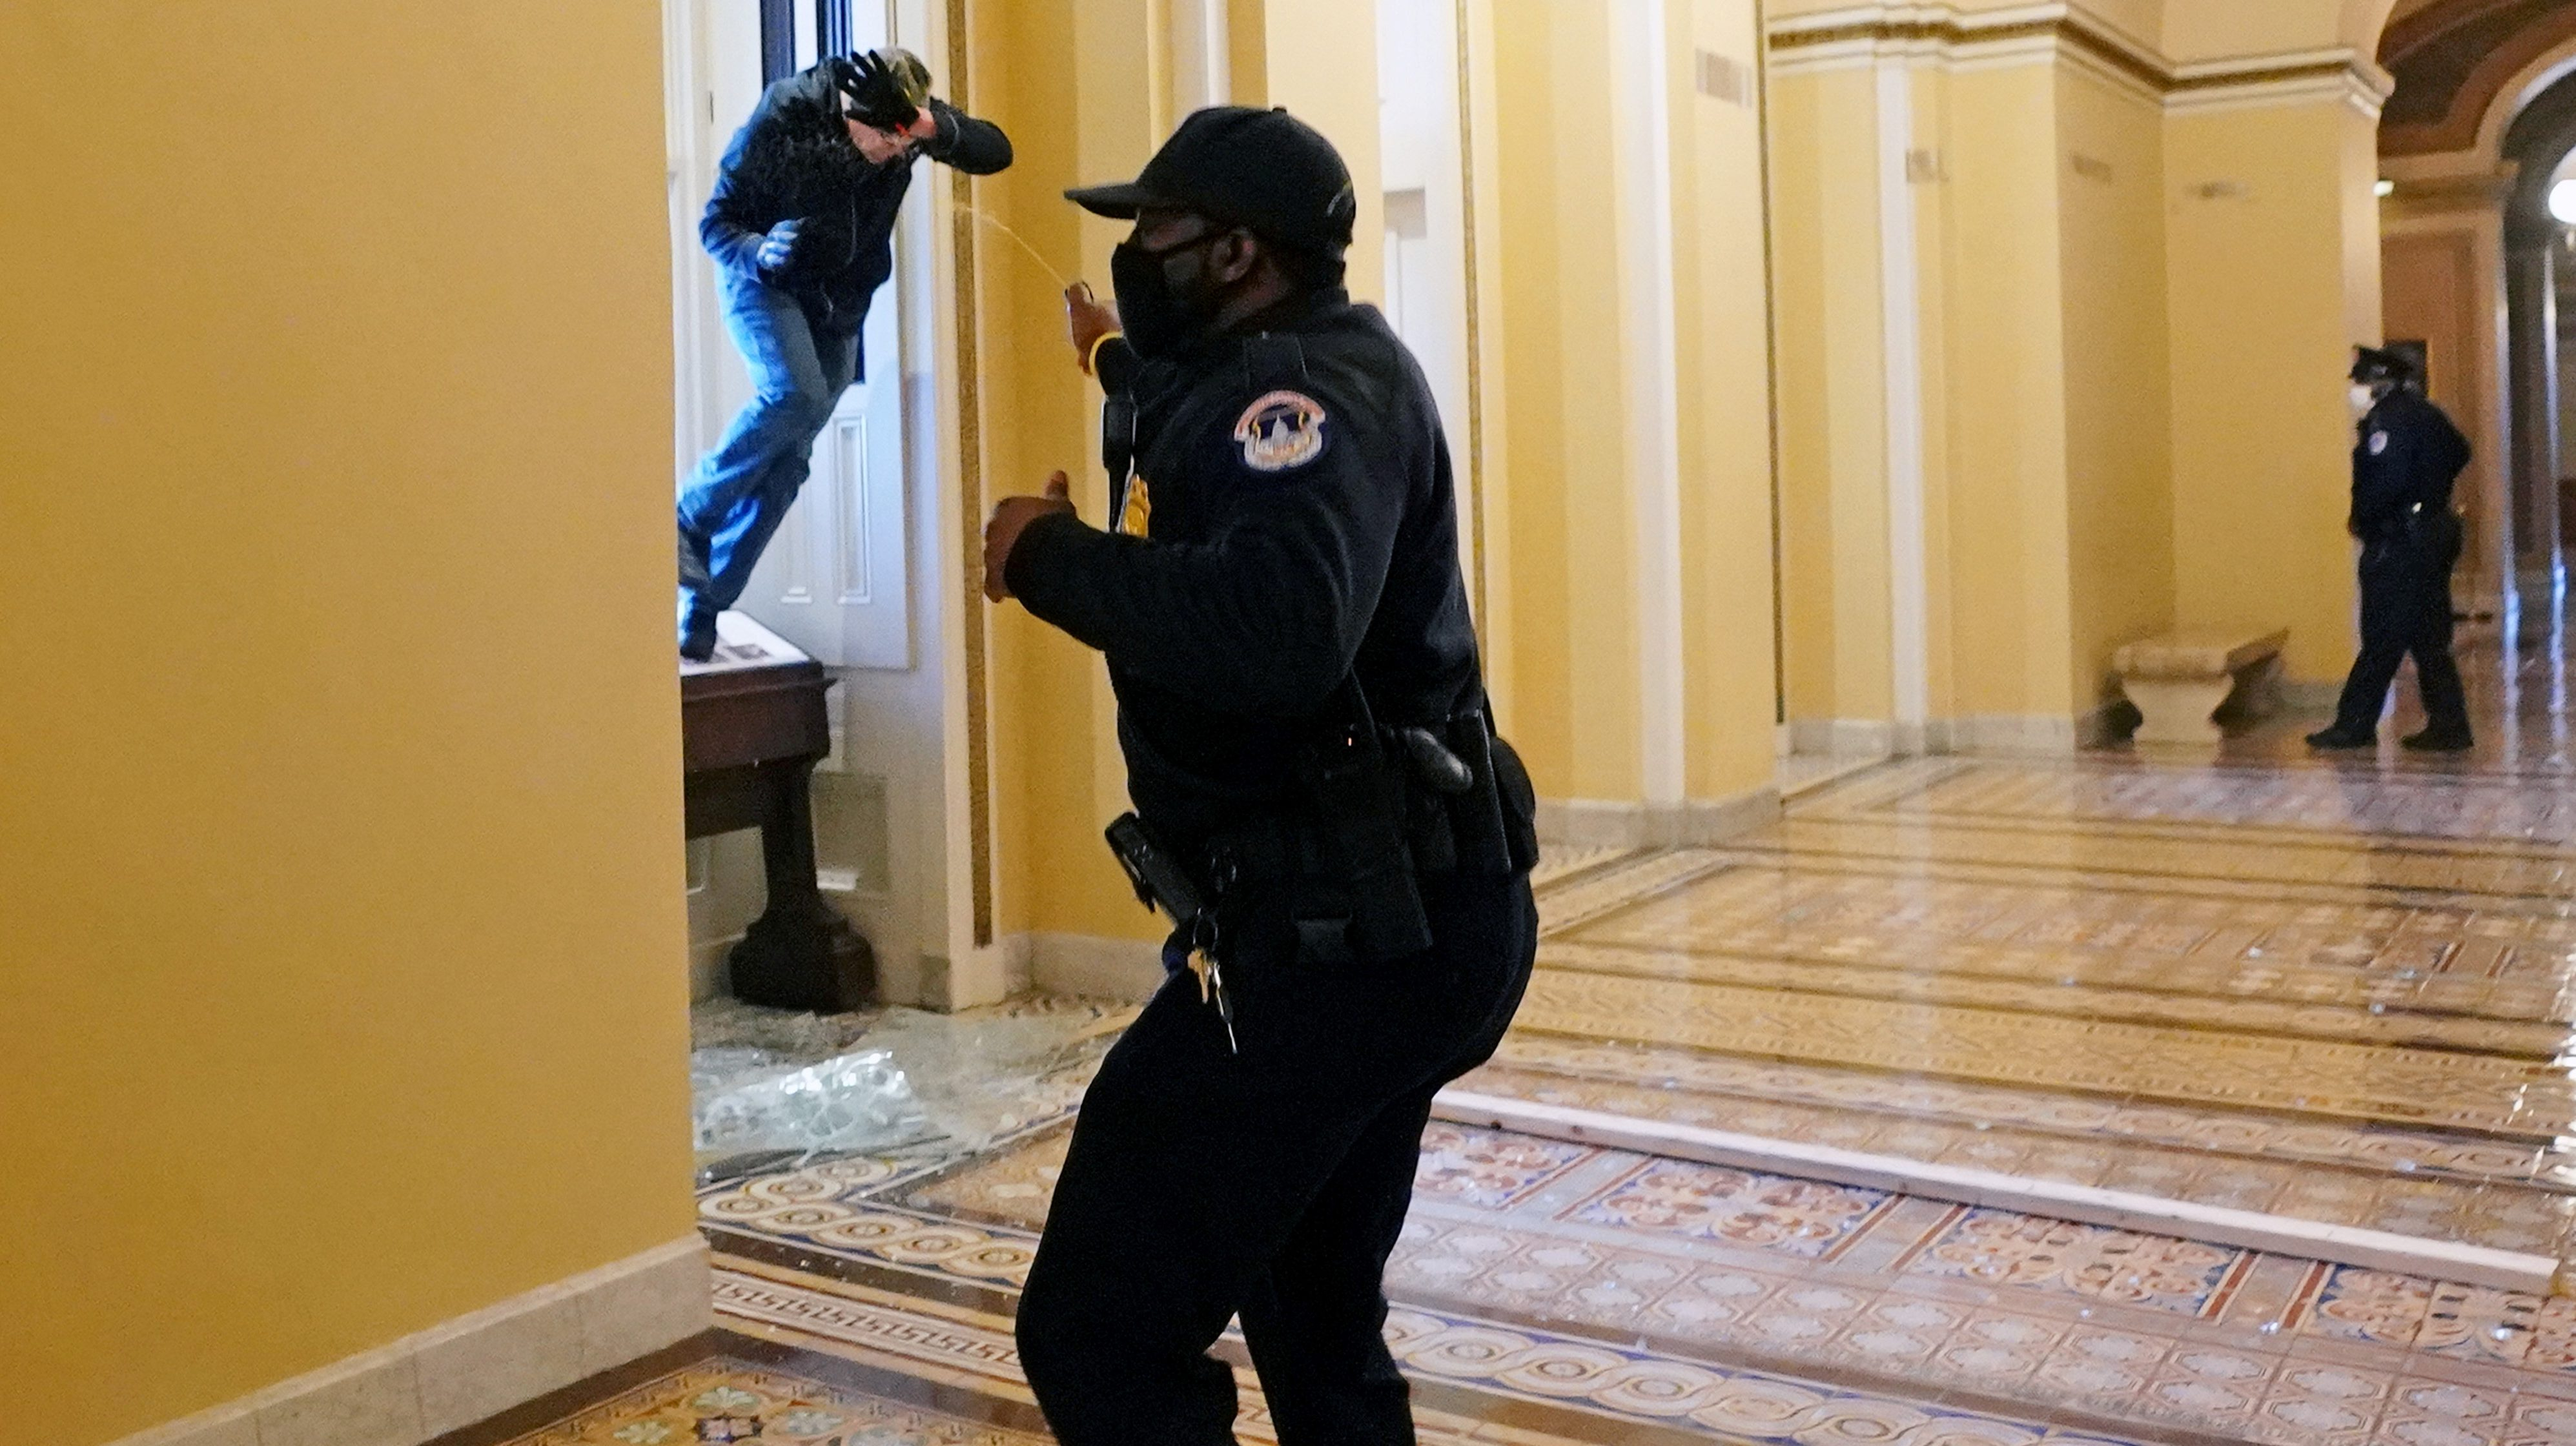 A U.S. Capitol police officer shoots pepper spray at a protestor attempting to enter the Capitol building during a joint session of Congress to certify the 2020 election results on Capitol Hill in Washington, U.S., January 6, 2021.